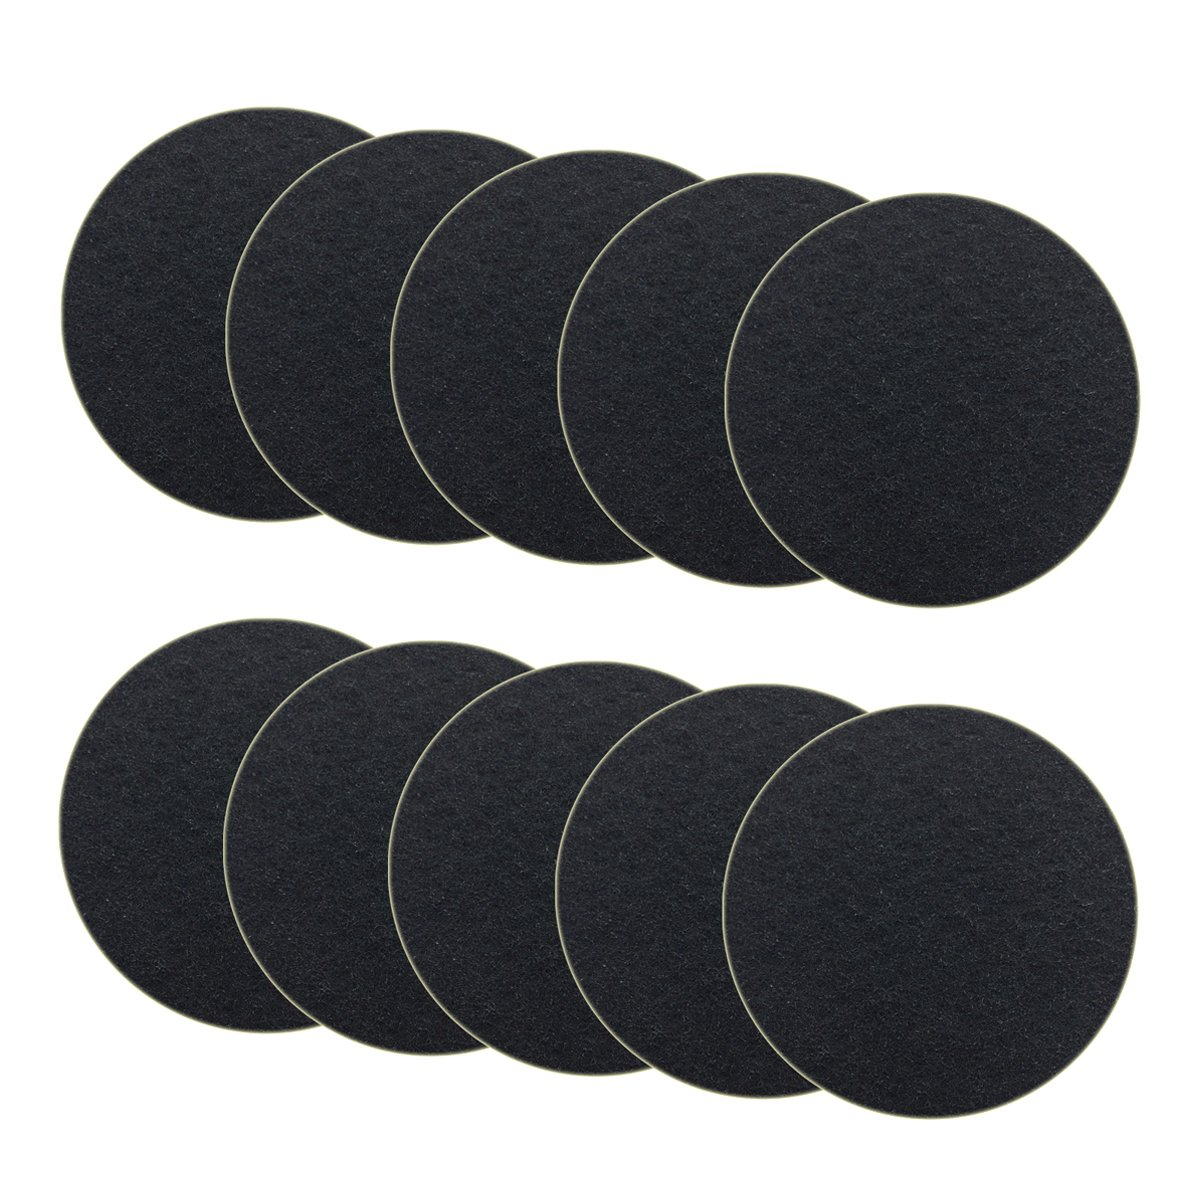 10-Pack Charcoal Filter for Kitchen Compost Bin Filters Replacement Compost Pail Bucket Refill 7.25 inch, Round